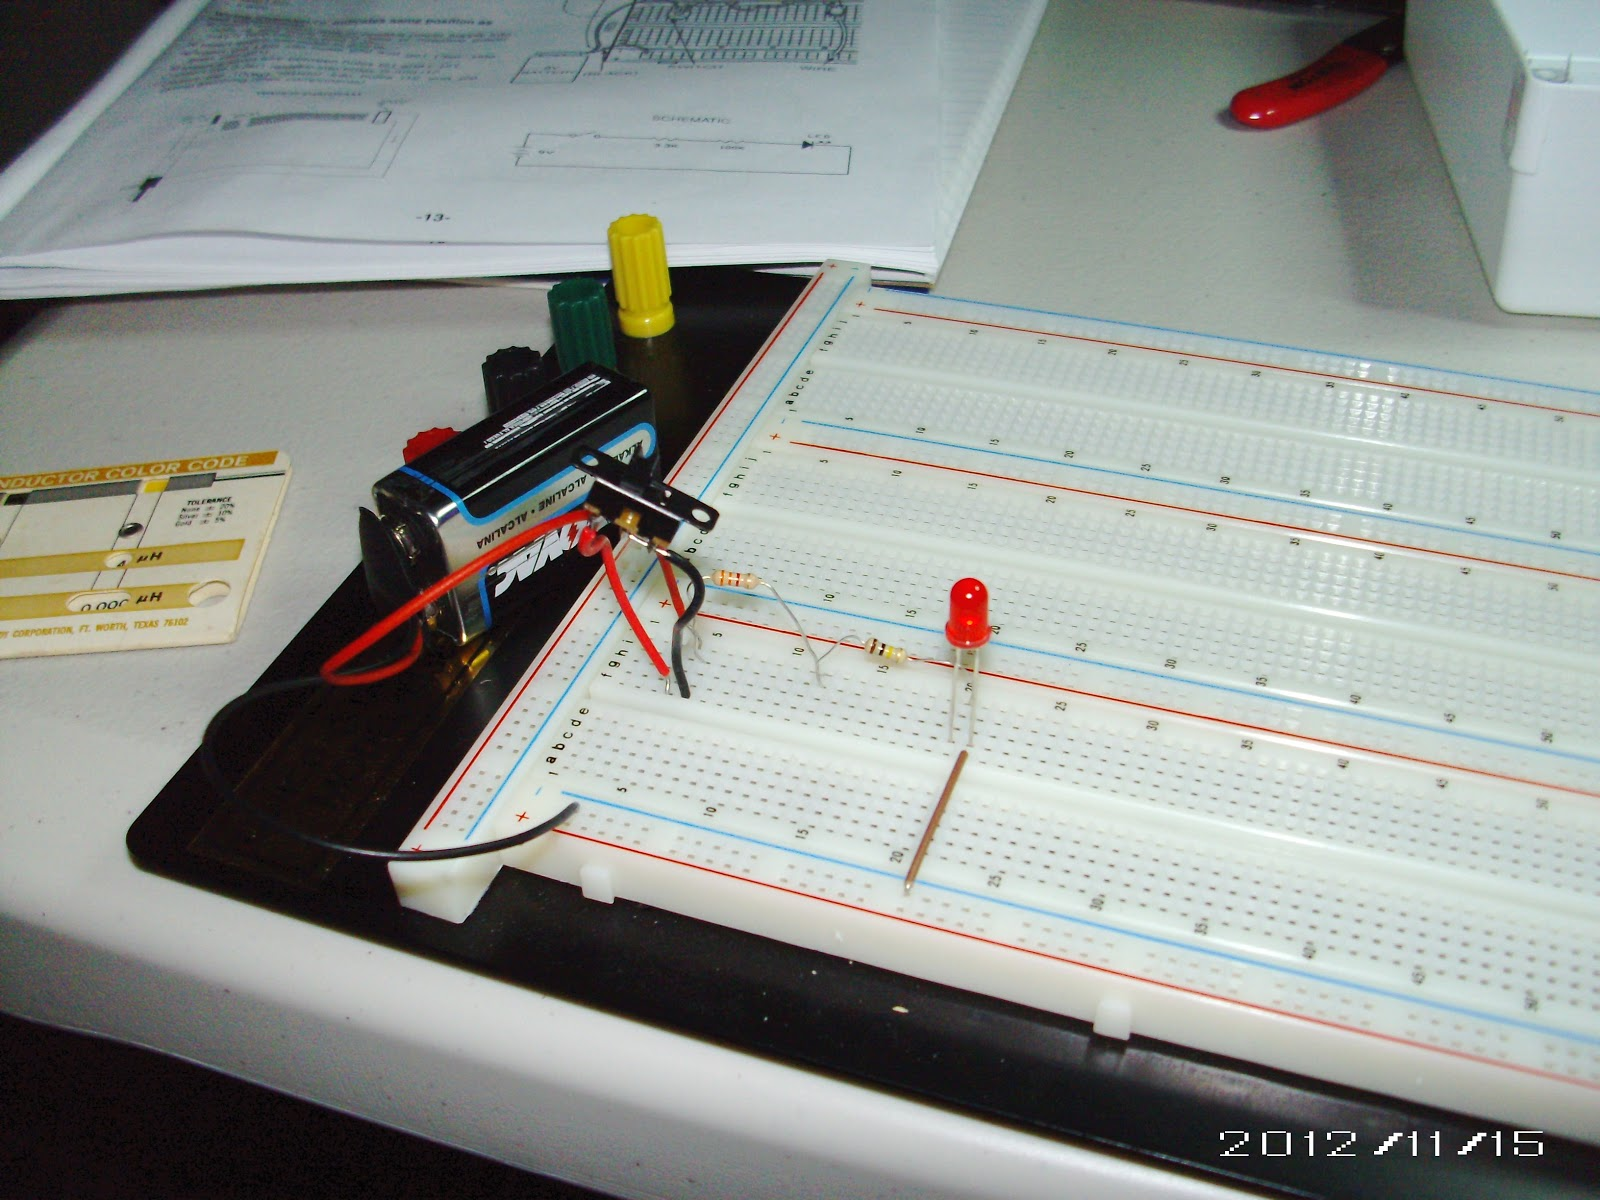 Electric Light Elencos Pk 201 Experiment 3 Resistors In Series Resistances Electrical Circuits A Add Together To Increase The Total Resistance Of Circuit Addition Larger Resistor That Will Control Flow